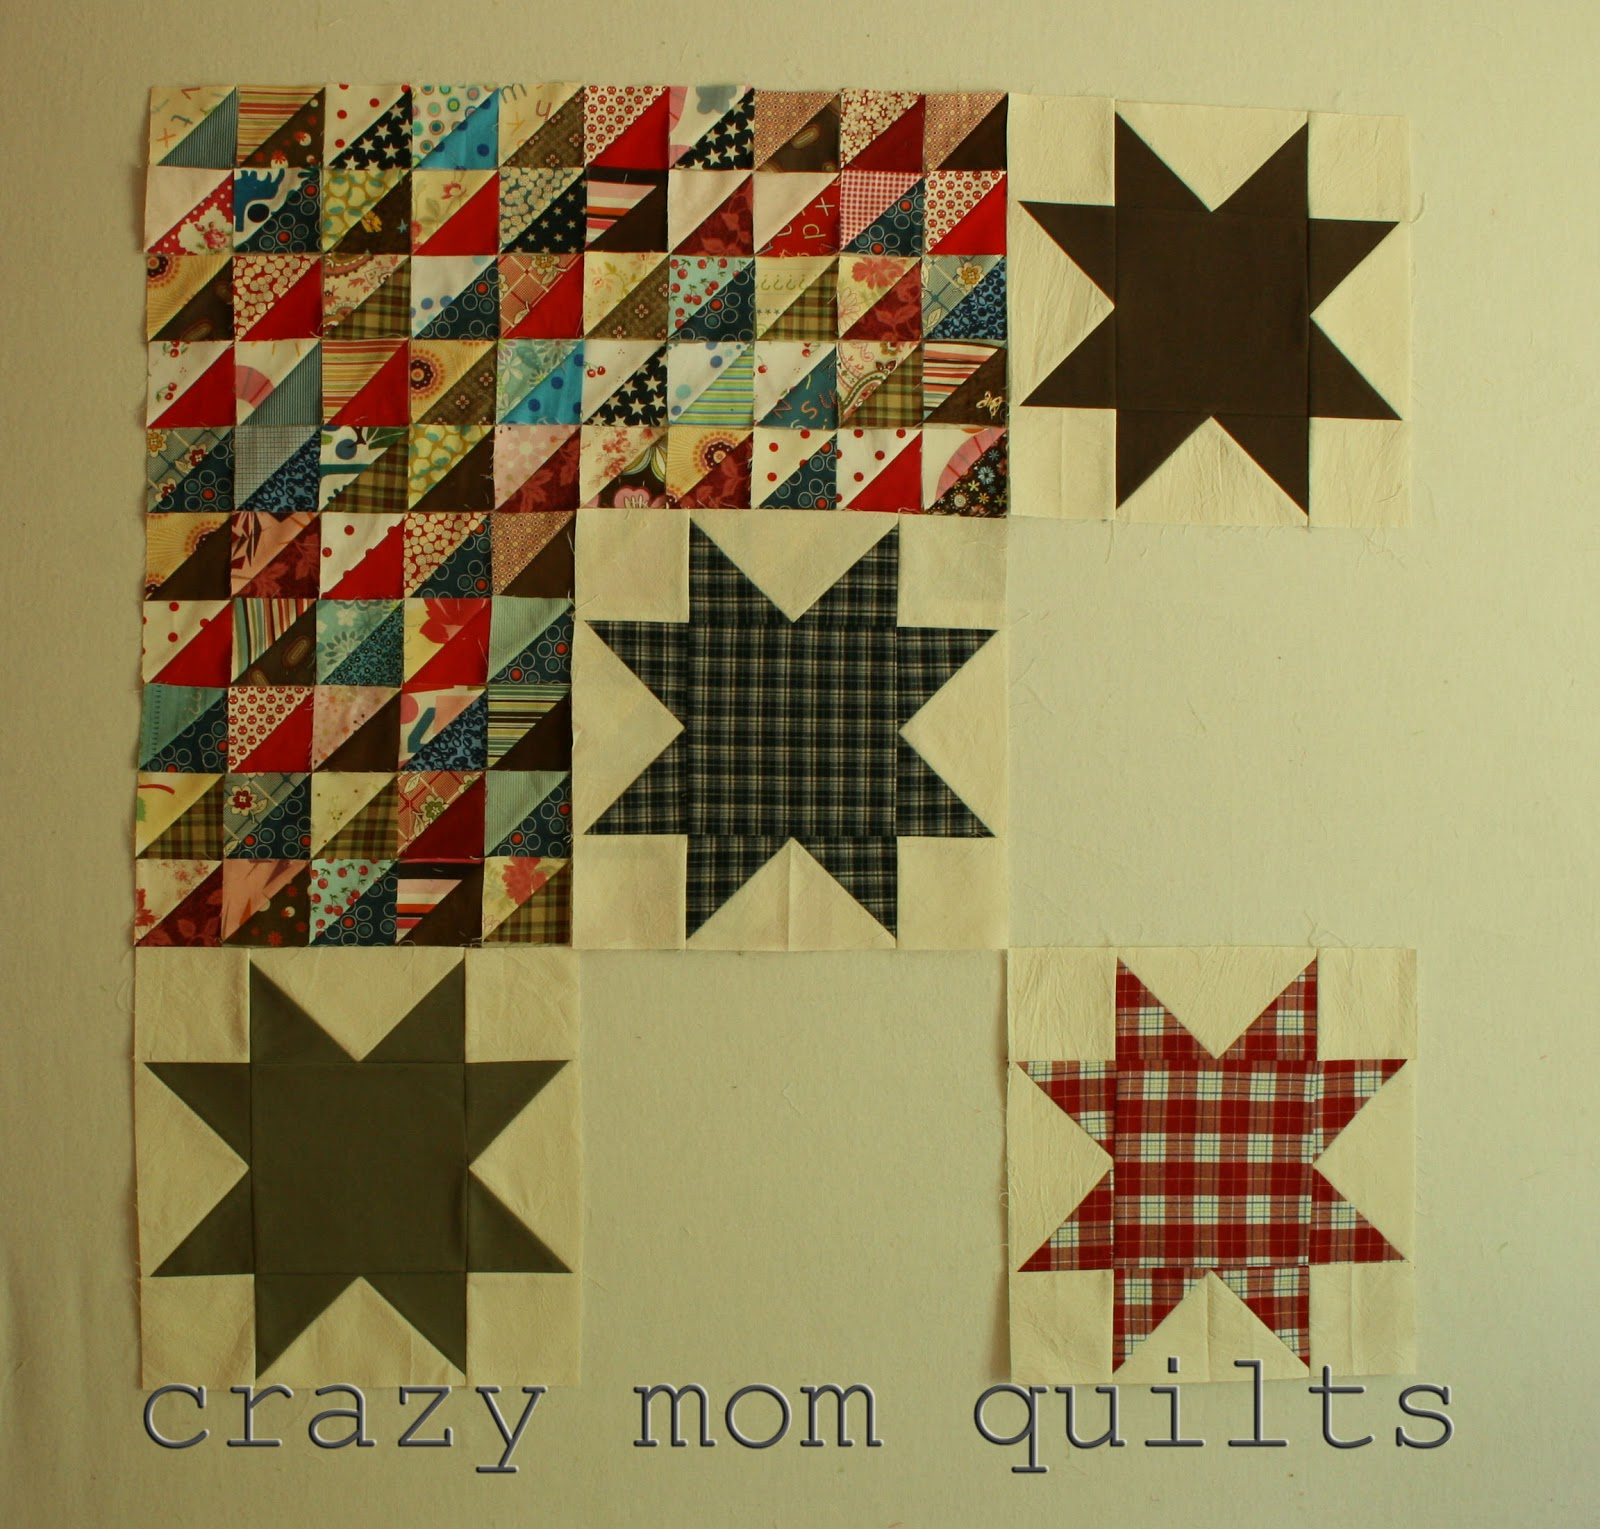 crazy mom quilts: December 2012